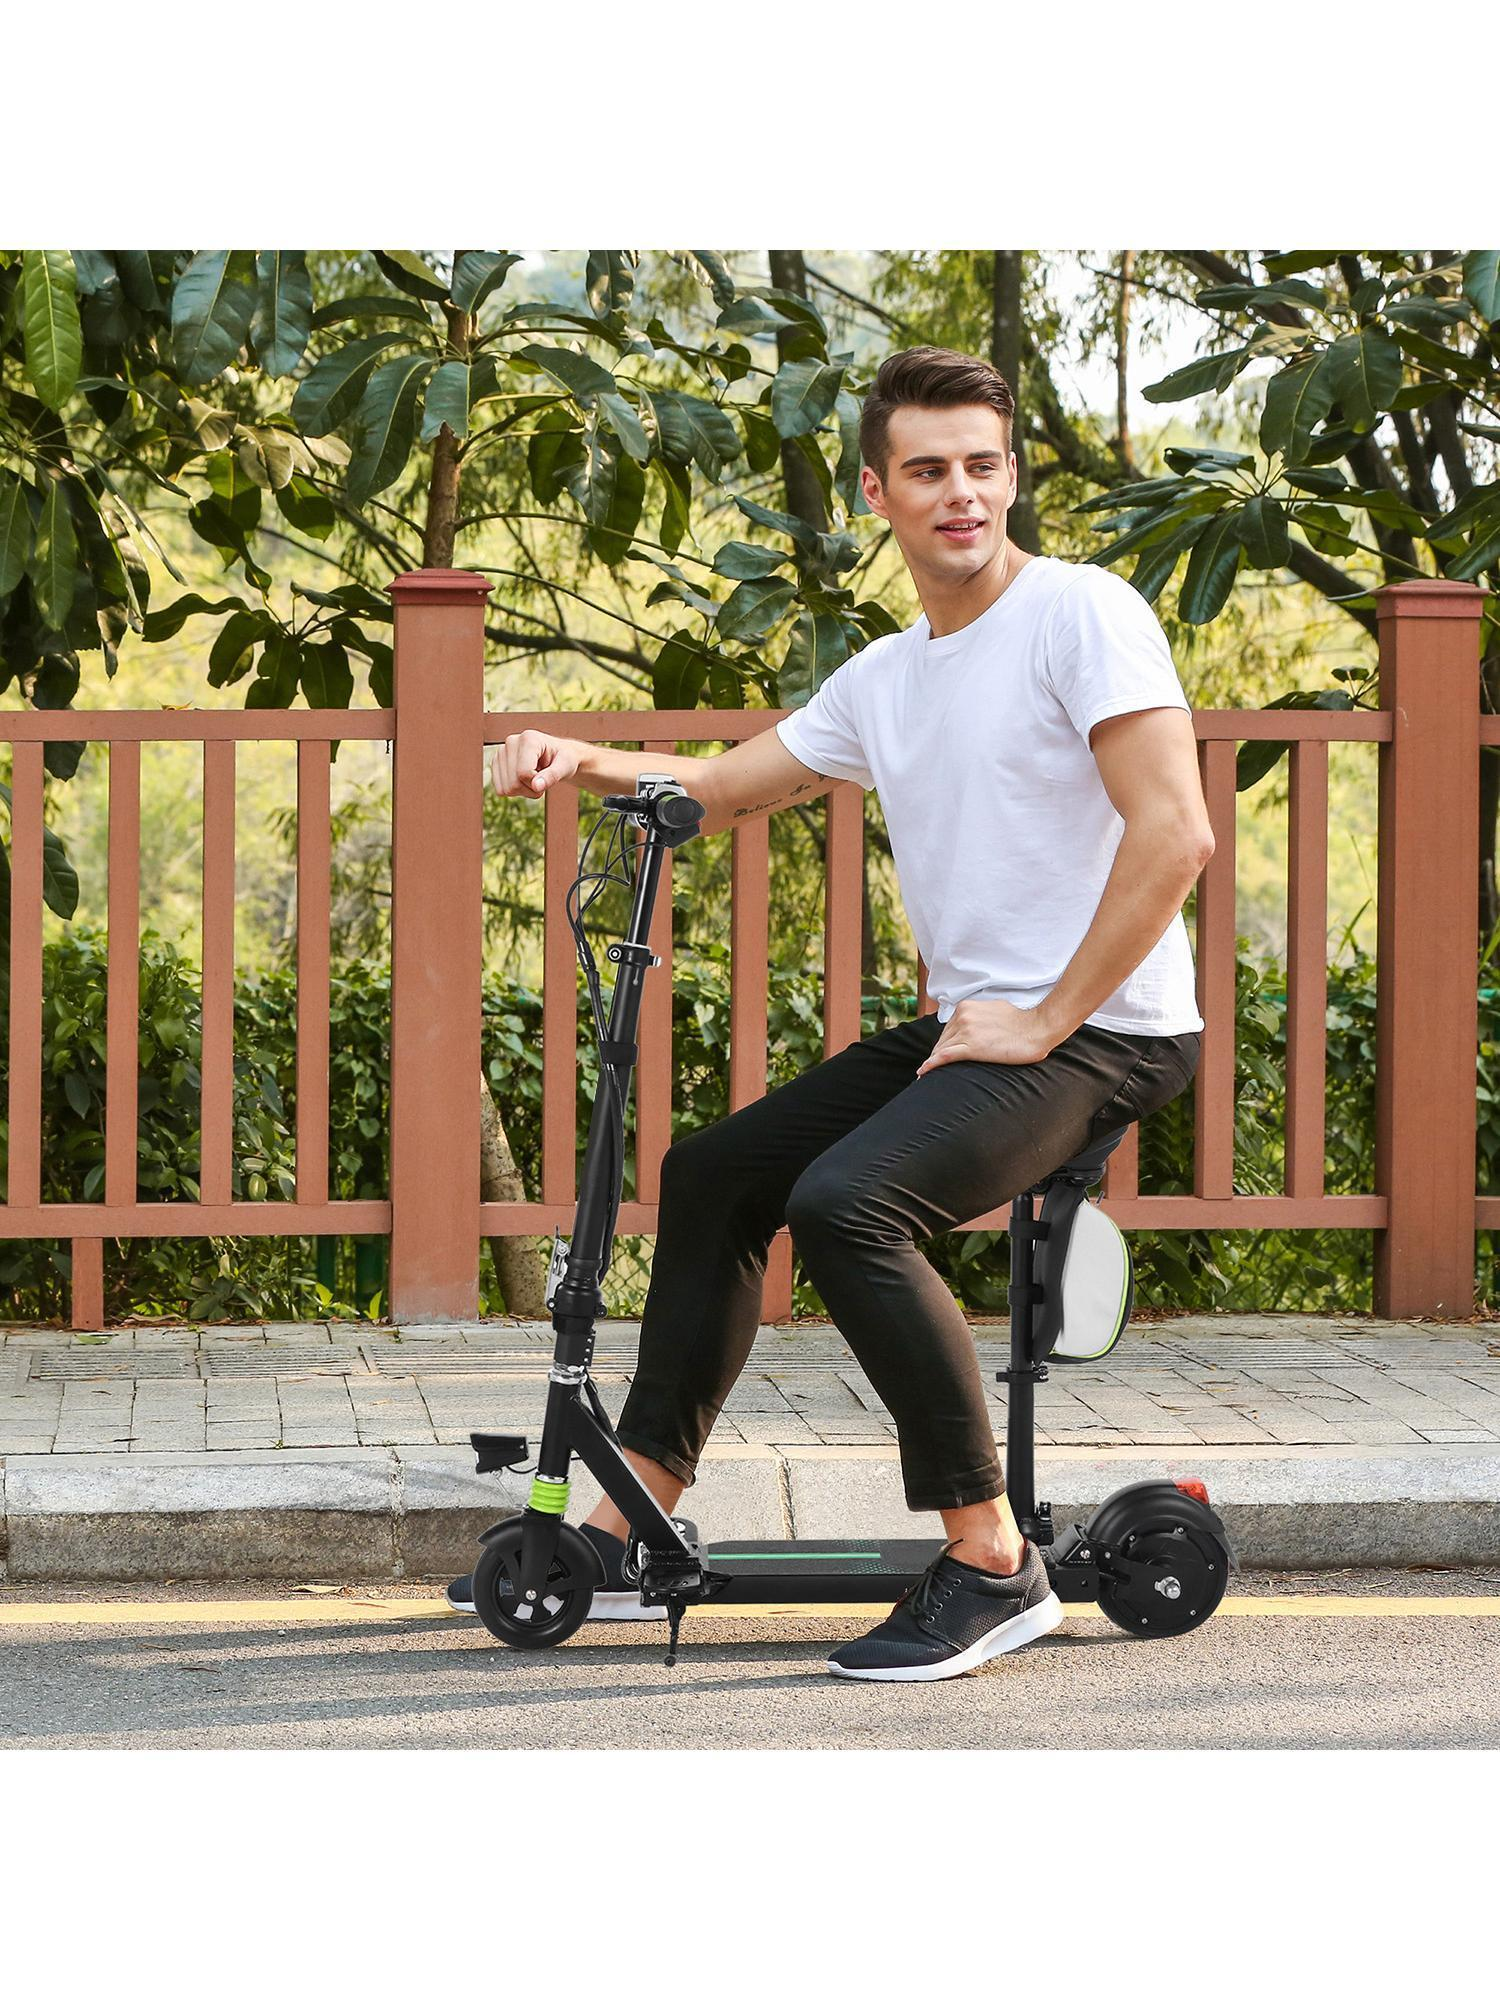 Holiday Saving!High Speed Foldable Height Adjustable Electric Scooter with Seat for Adults Teens, Lightweight Mini Ebike... by